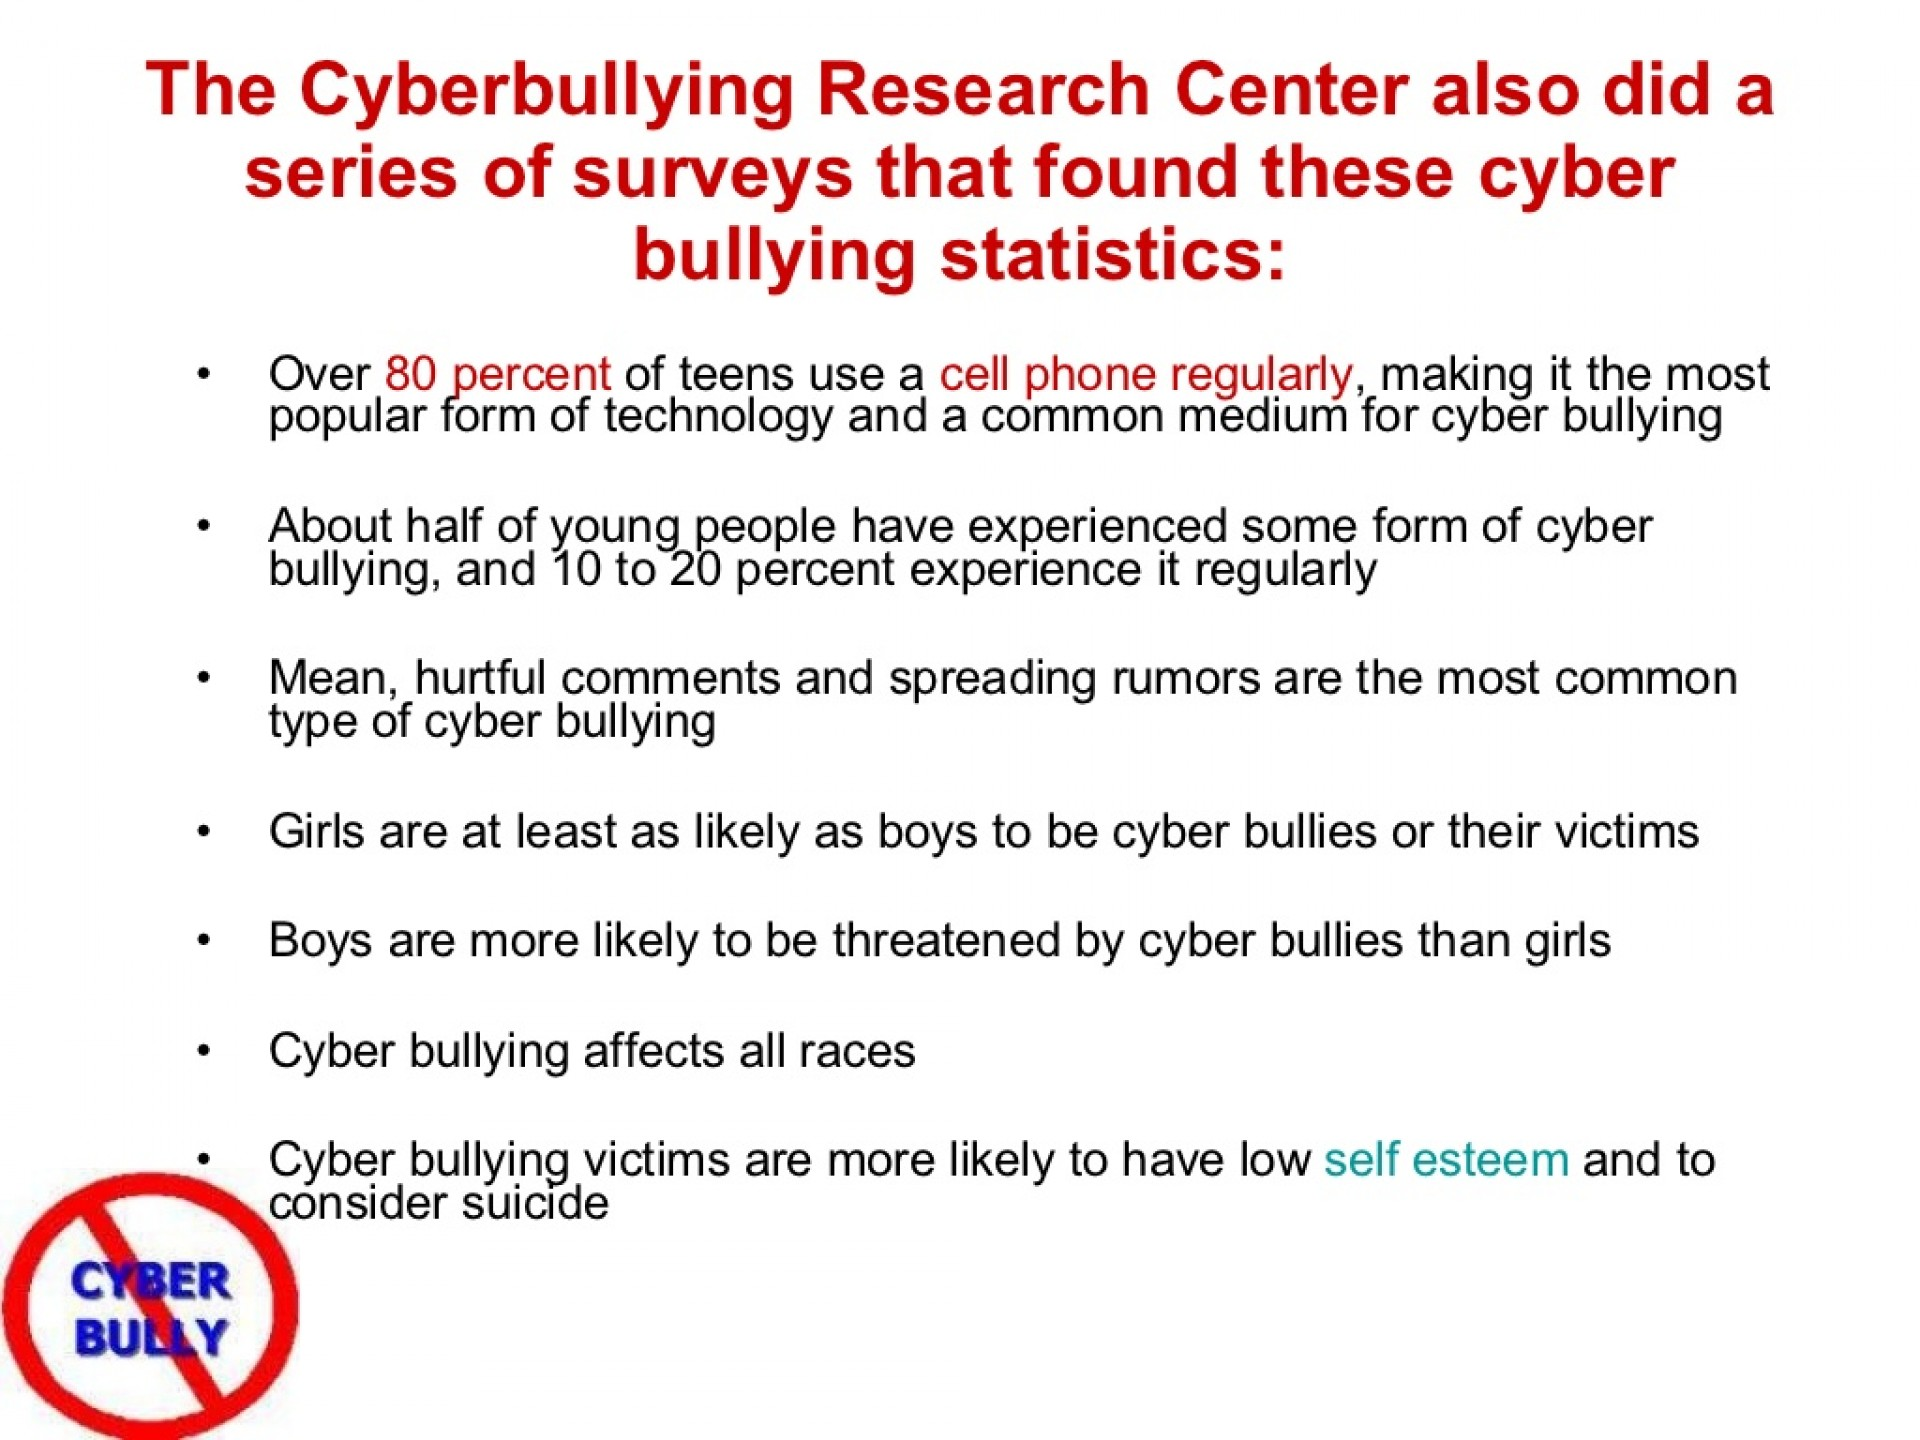 019 Research Paper Cyberbullying Center Slide Excellent Statistics 2015 Location 1920